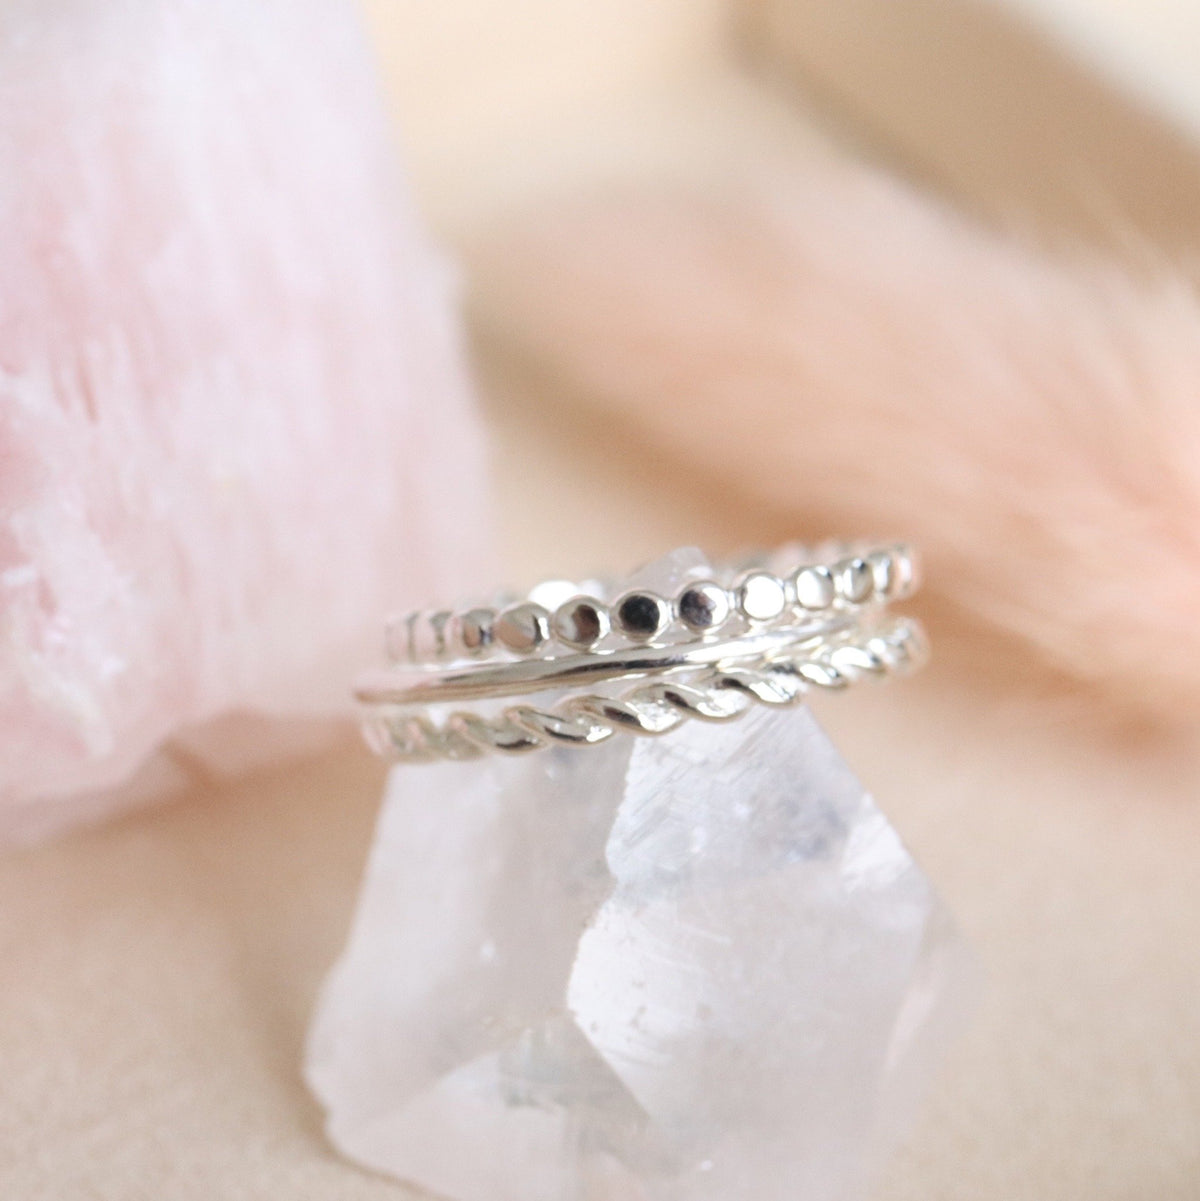 POISE THIN CABLE LINK BAND RING - SILVER - SO PRETTY CARA COTTER